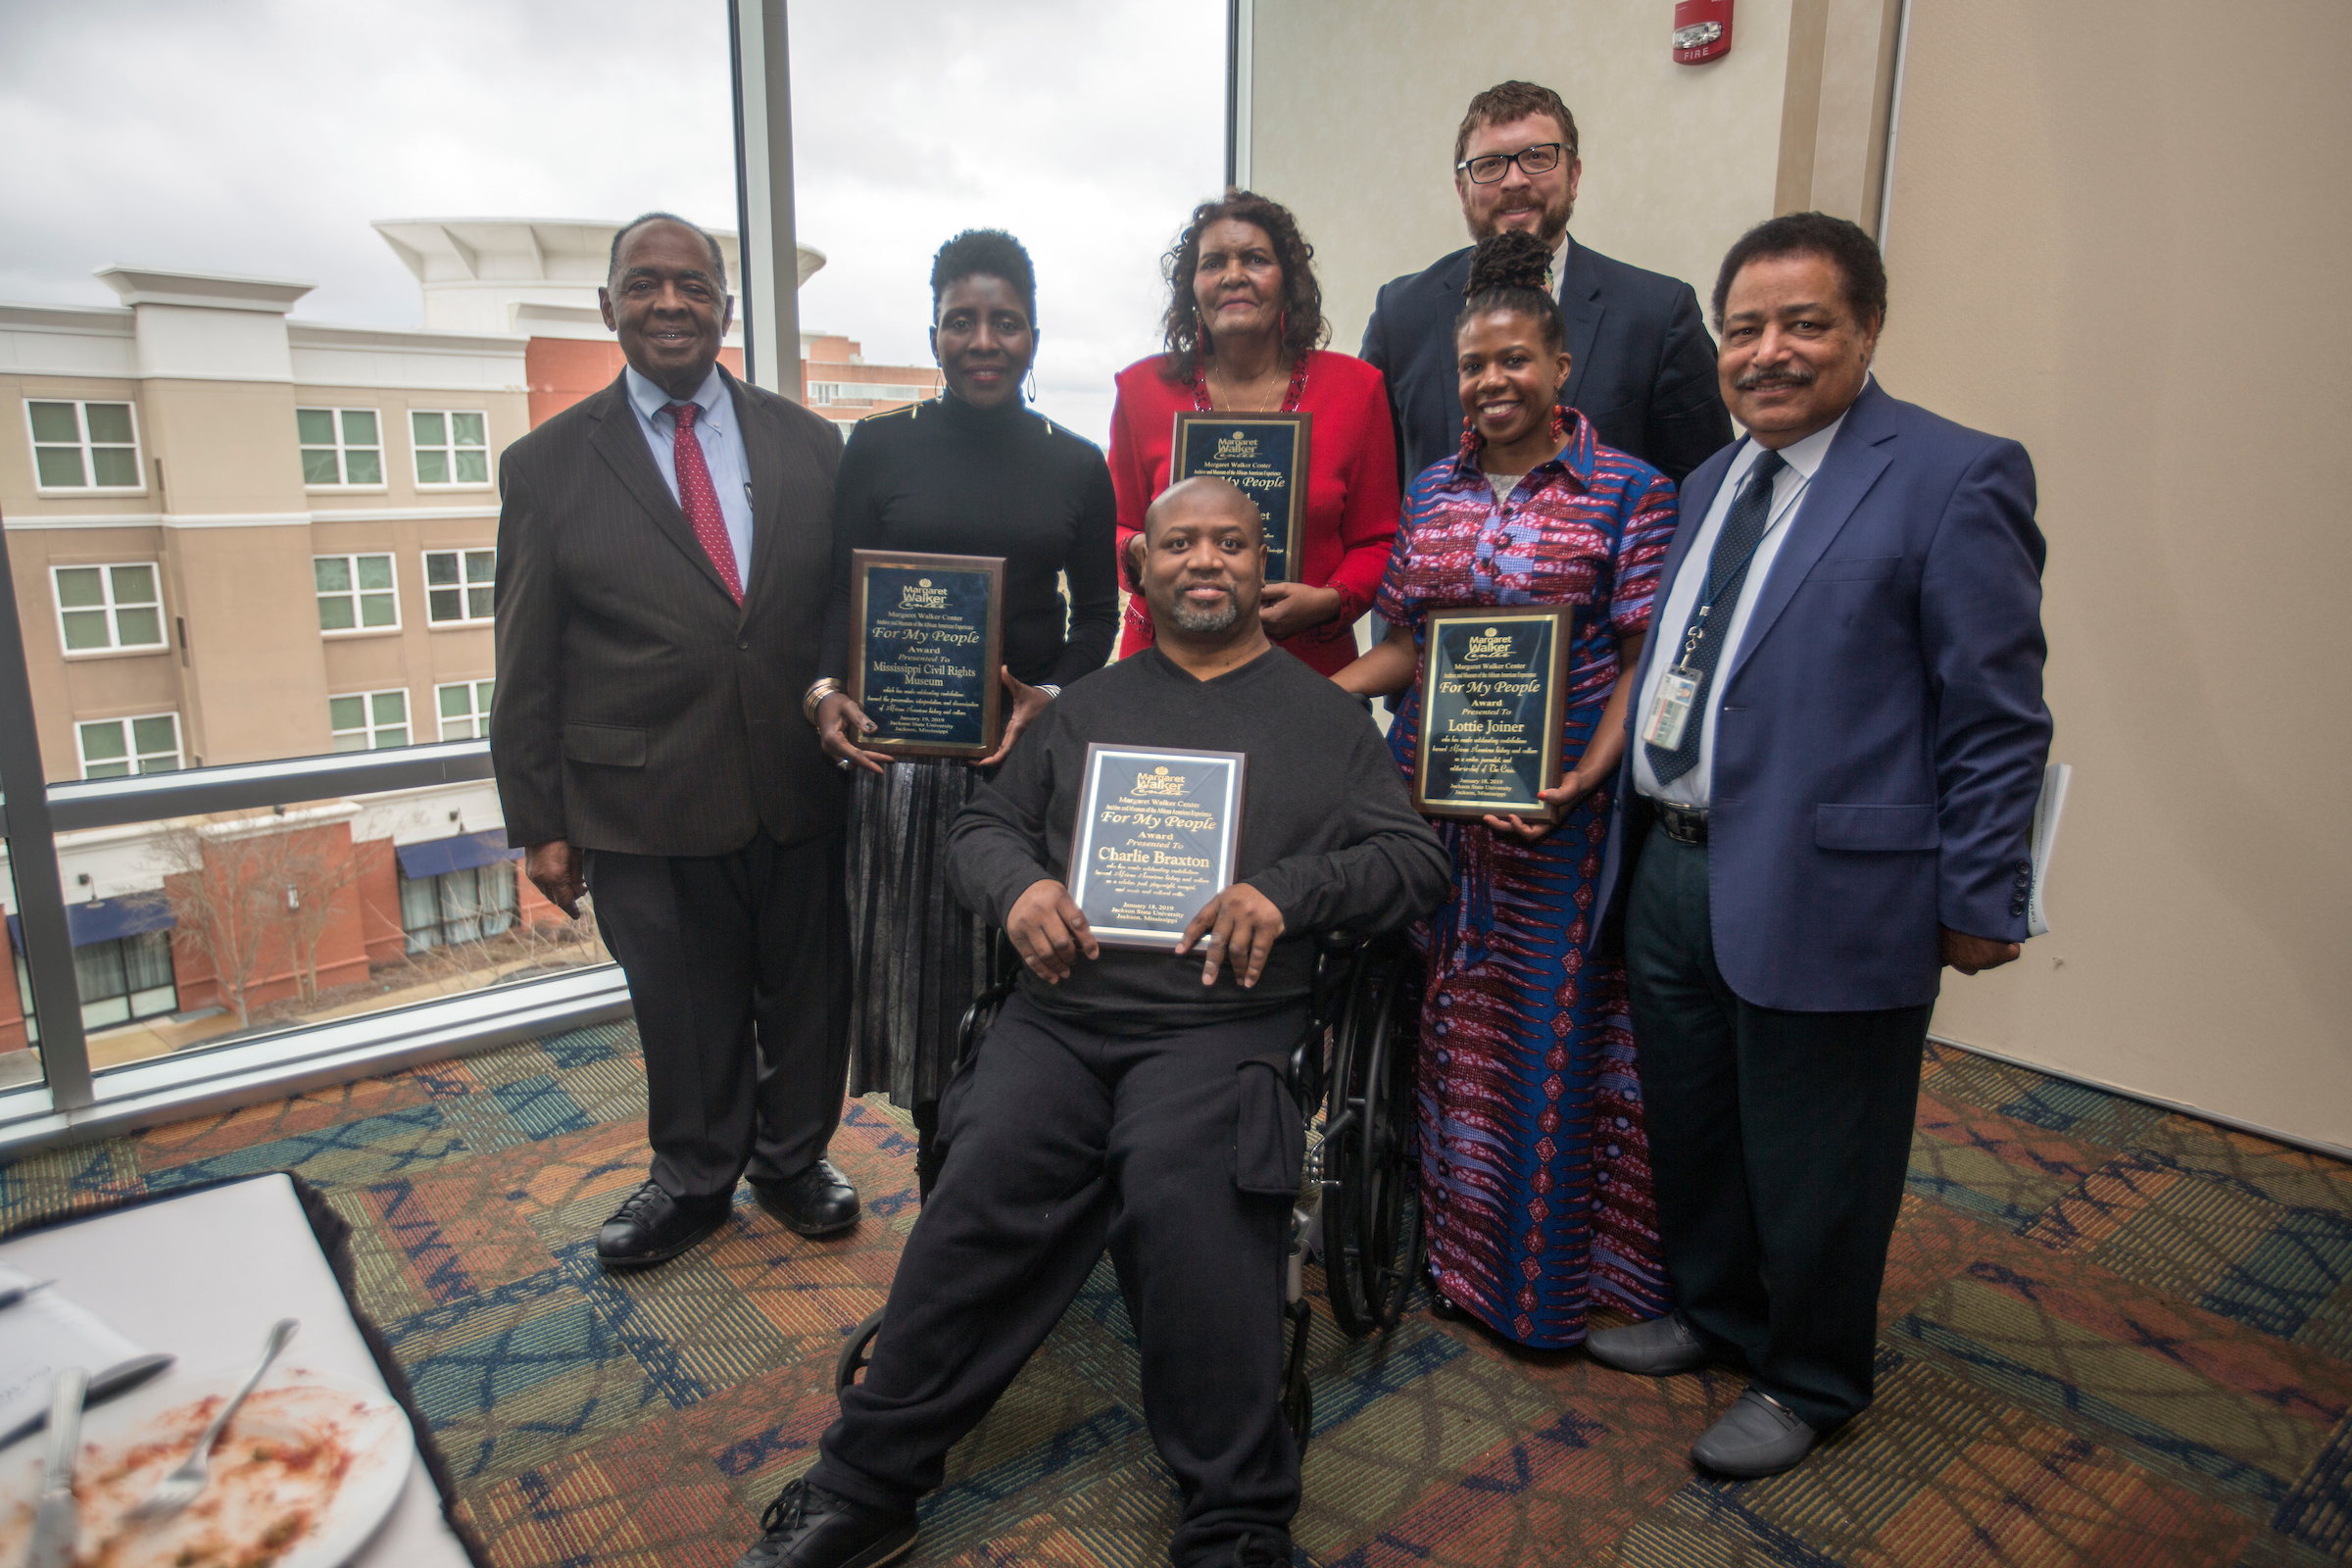 From left to right: Dr. Robert Smith, advisory board chair for the Margaret Walker Center; Pamela Junior, director of the Mississippi Civil Rights Museum; Grace Sweet co-author of Church Street: The Sugar Hill of Jackson, Mississippi; Dr. Robert Luckett, director of the Margaret Walker Center; Lottie Joiner, JSU alum and editor-in-chief of The Crisis Magazine; Dr. Mario Azevedo, dean of the College of Liberal Arts; and Charlie Braxton, writer and cultural critic. (Benjamin Bradley not pictured) (Photo by Charles A. Smith/JSU)